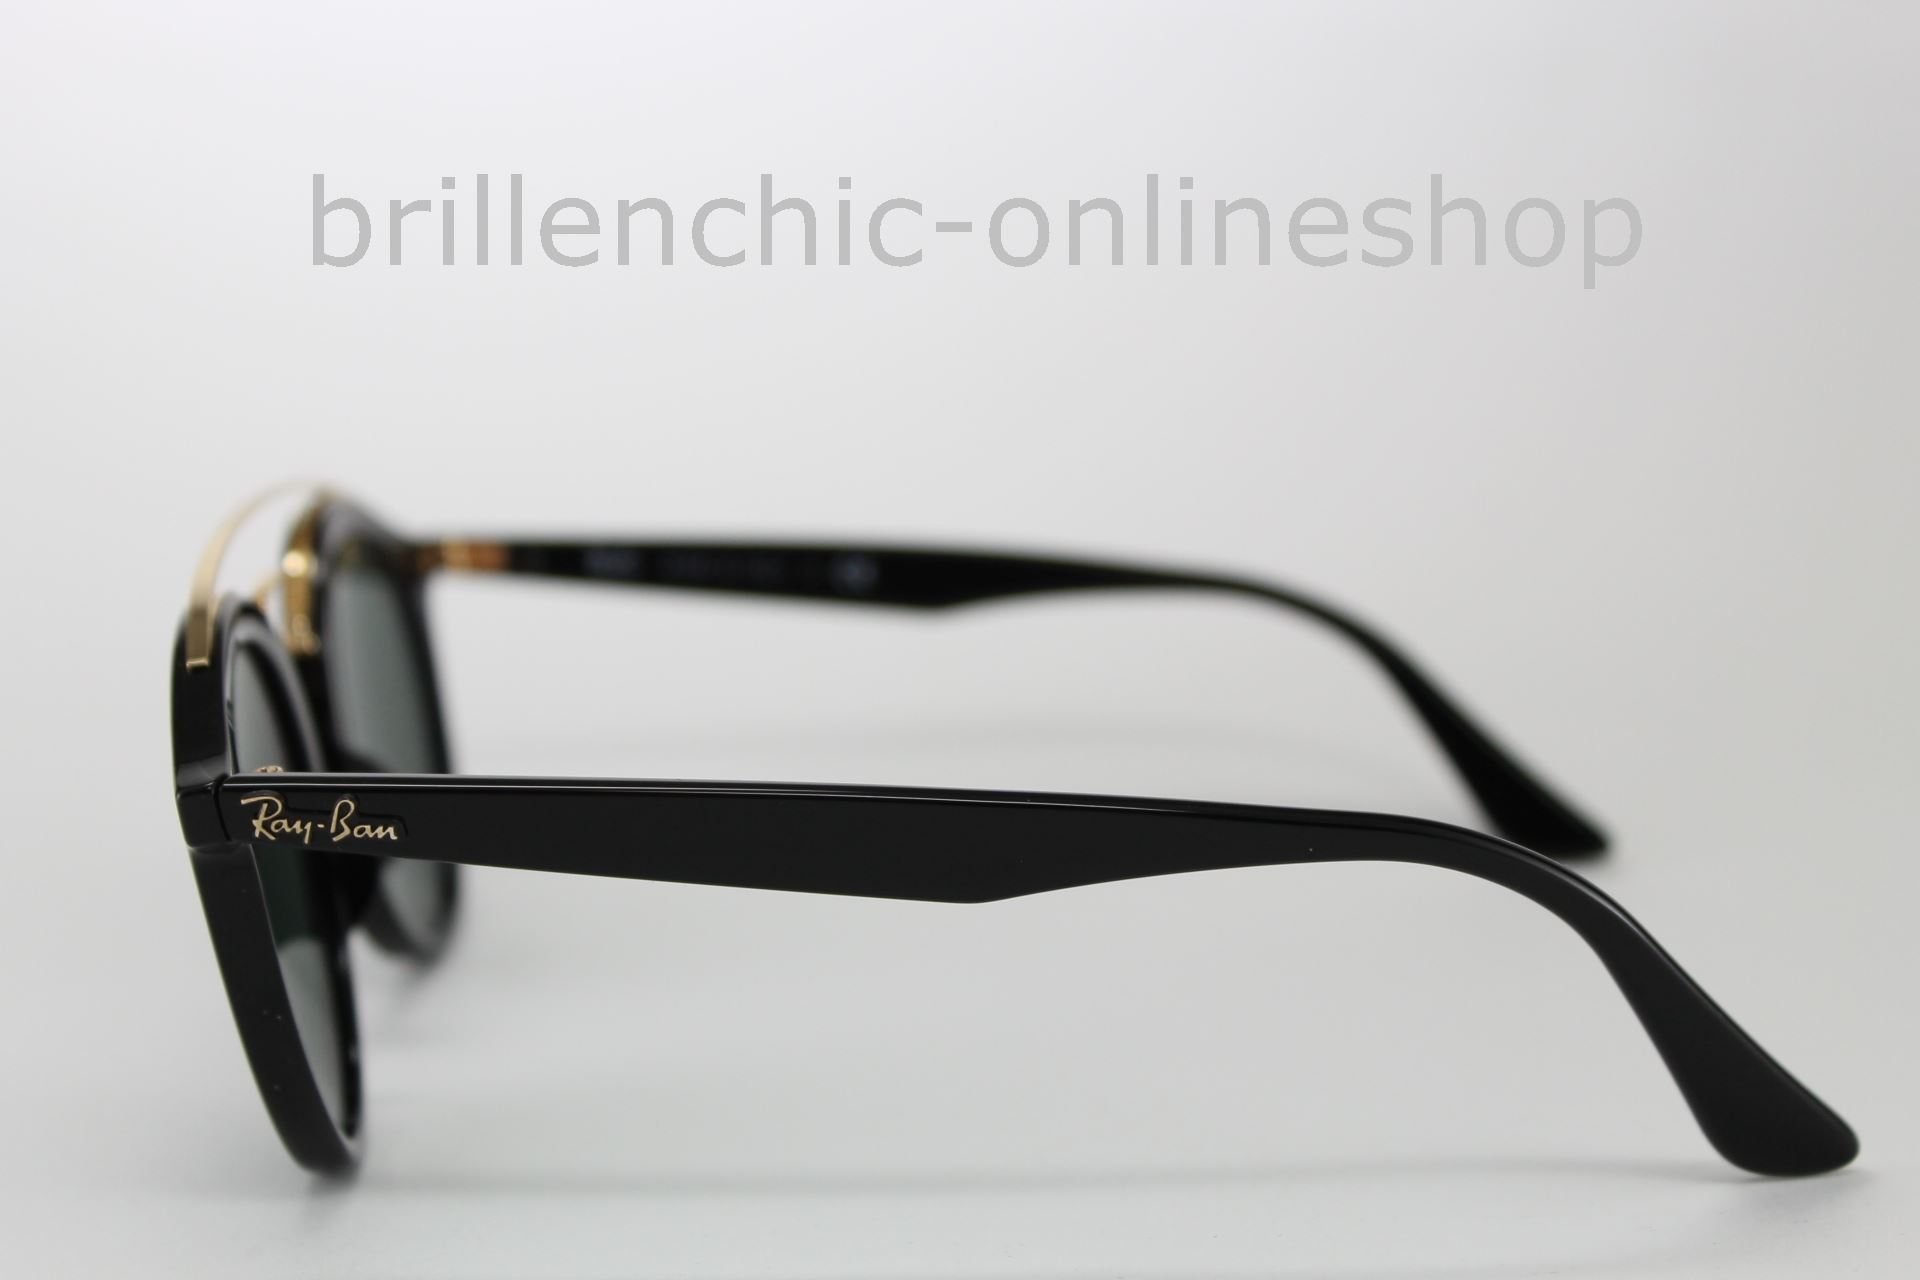 f27f7d2b85 Brillenchic-onlineshop in Berlin - Ray Ban NEW GATSBY I RB 4256 601 71